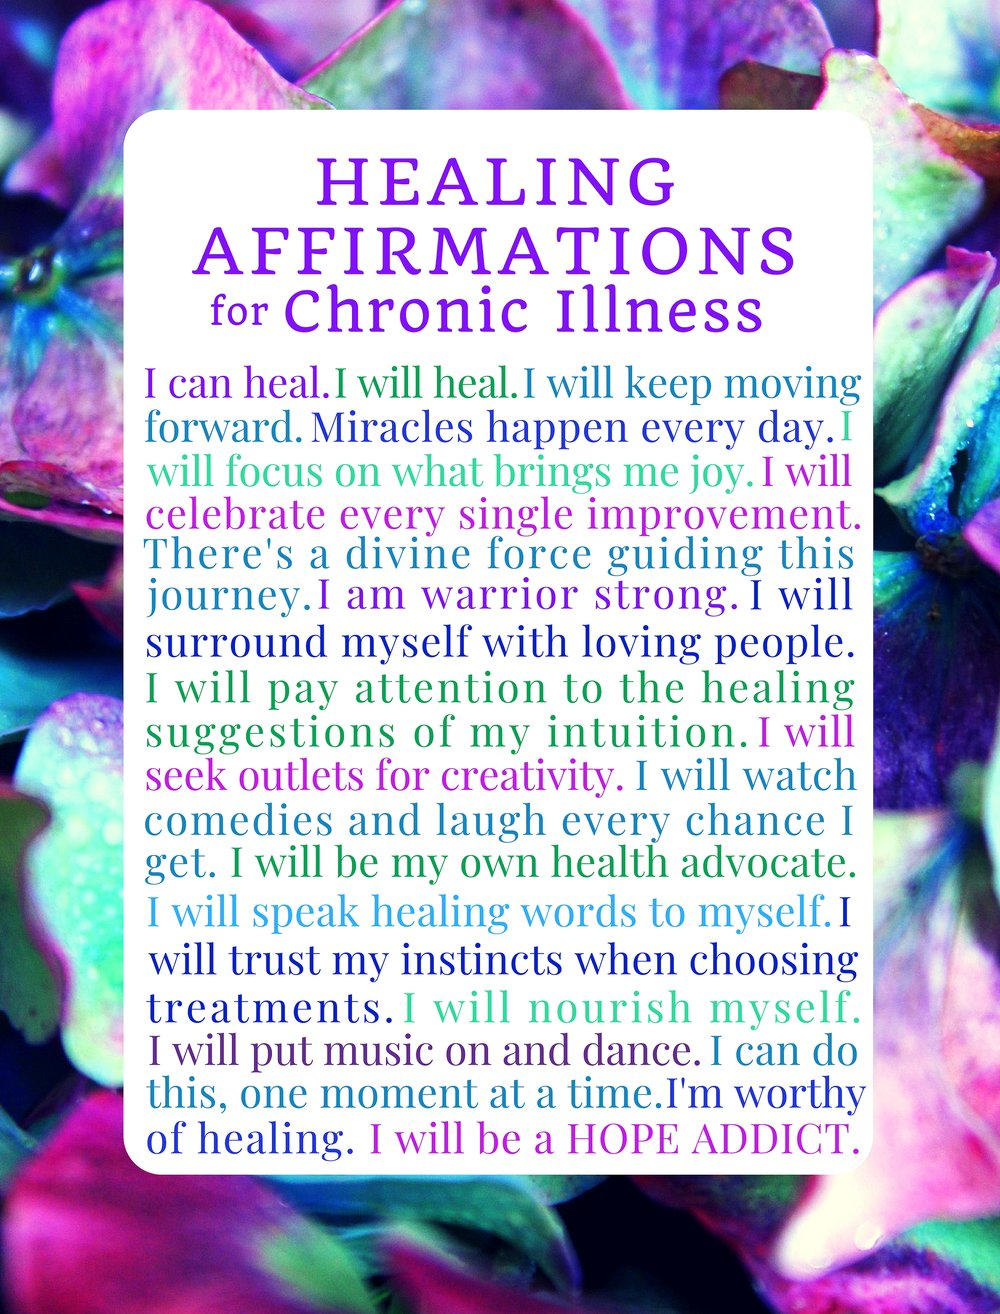 Healing Affirmations for the Chronic Illness Blank Journal Notebook by Kimberly Ahri